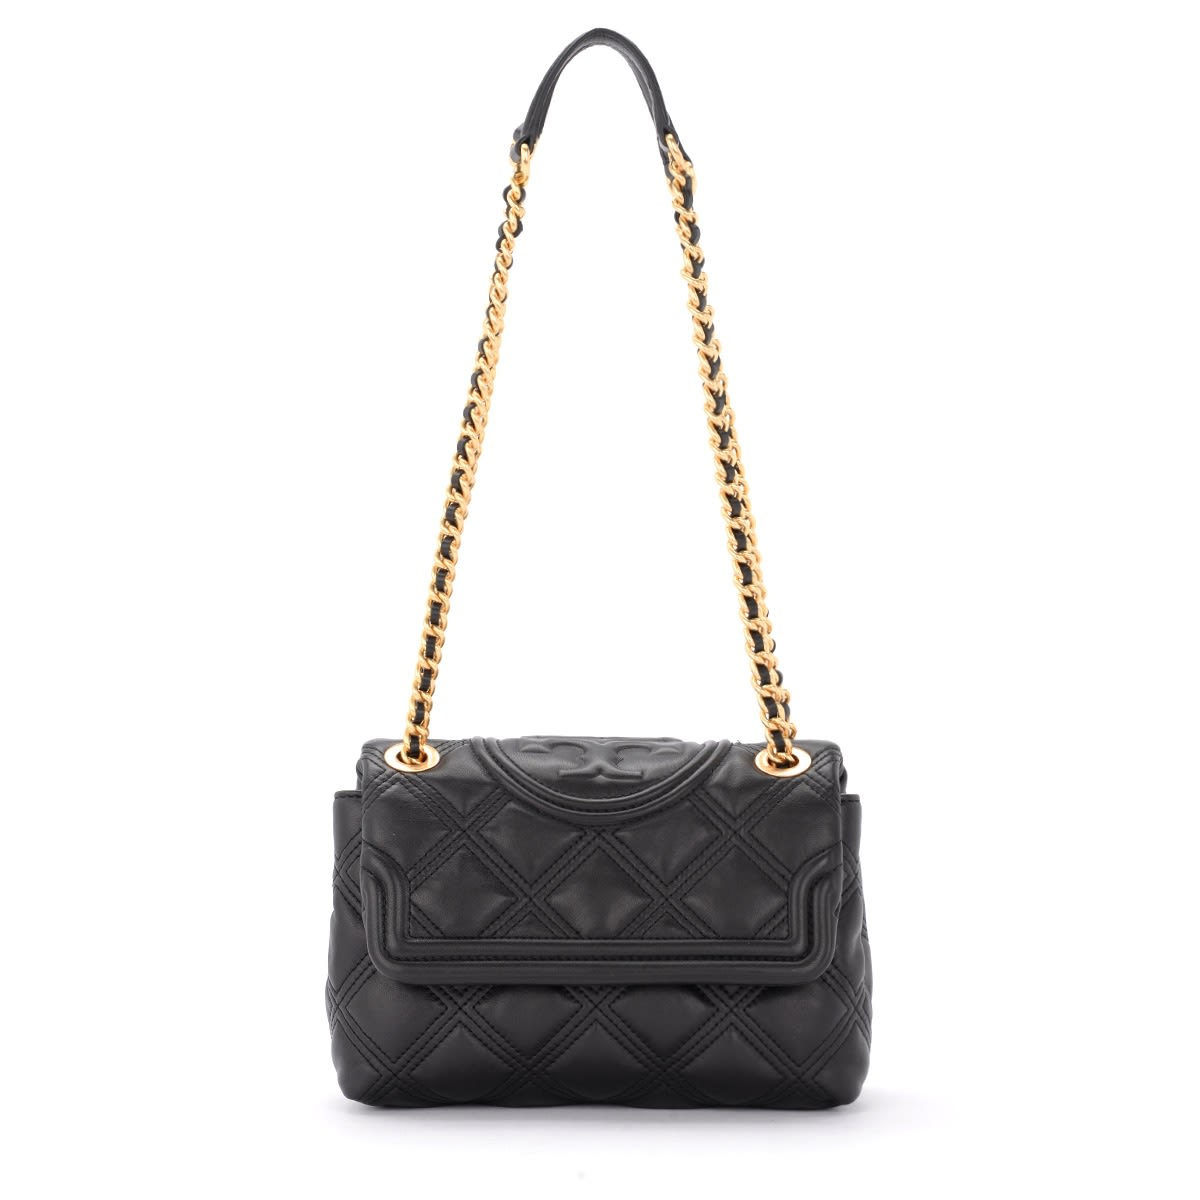 Tory Burch FLEMING SMALL SHOULDER BAG IN BLACK DIAMOND QUILTED LEATHER